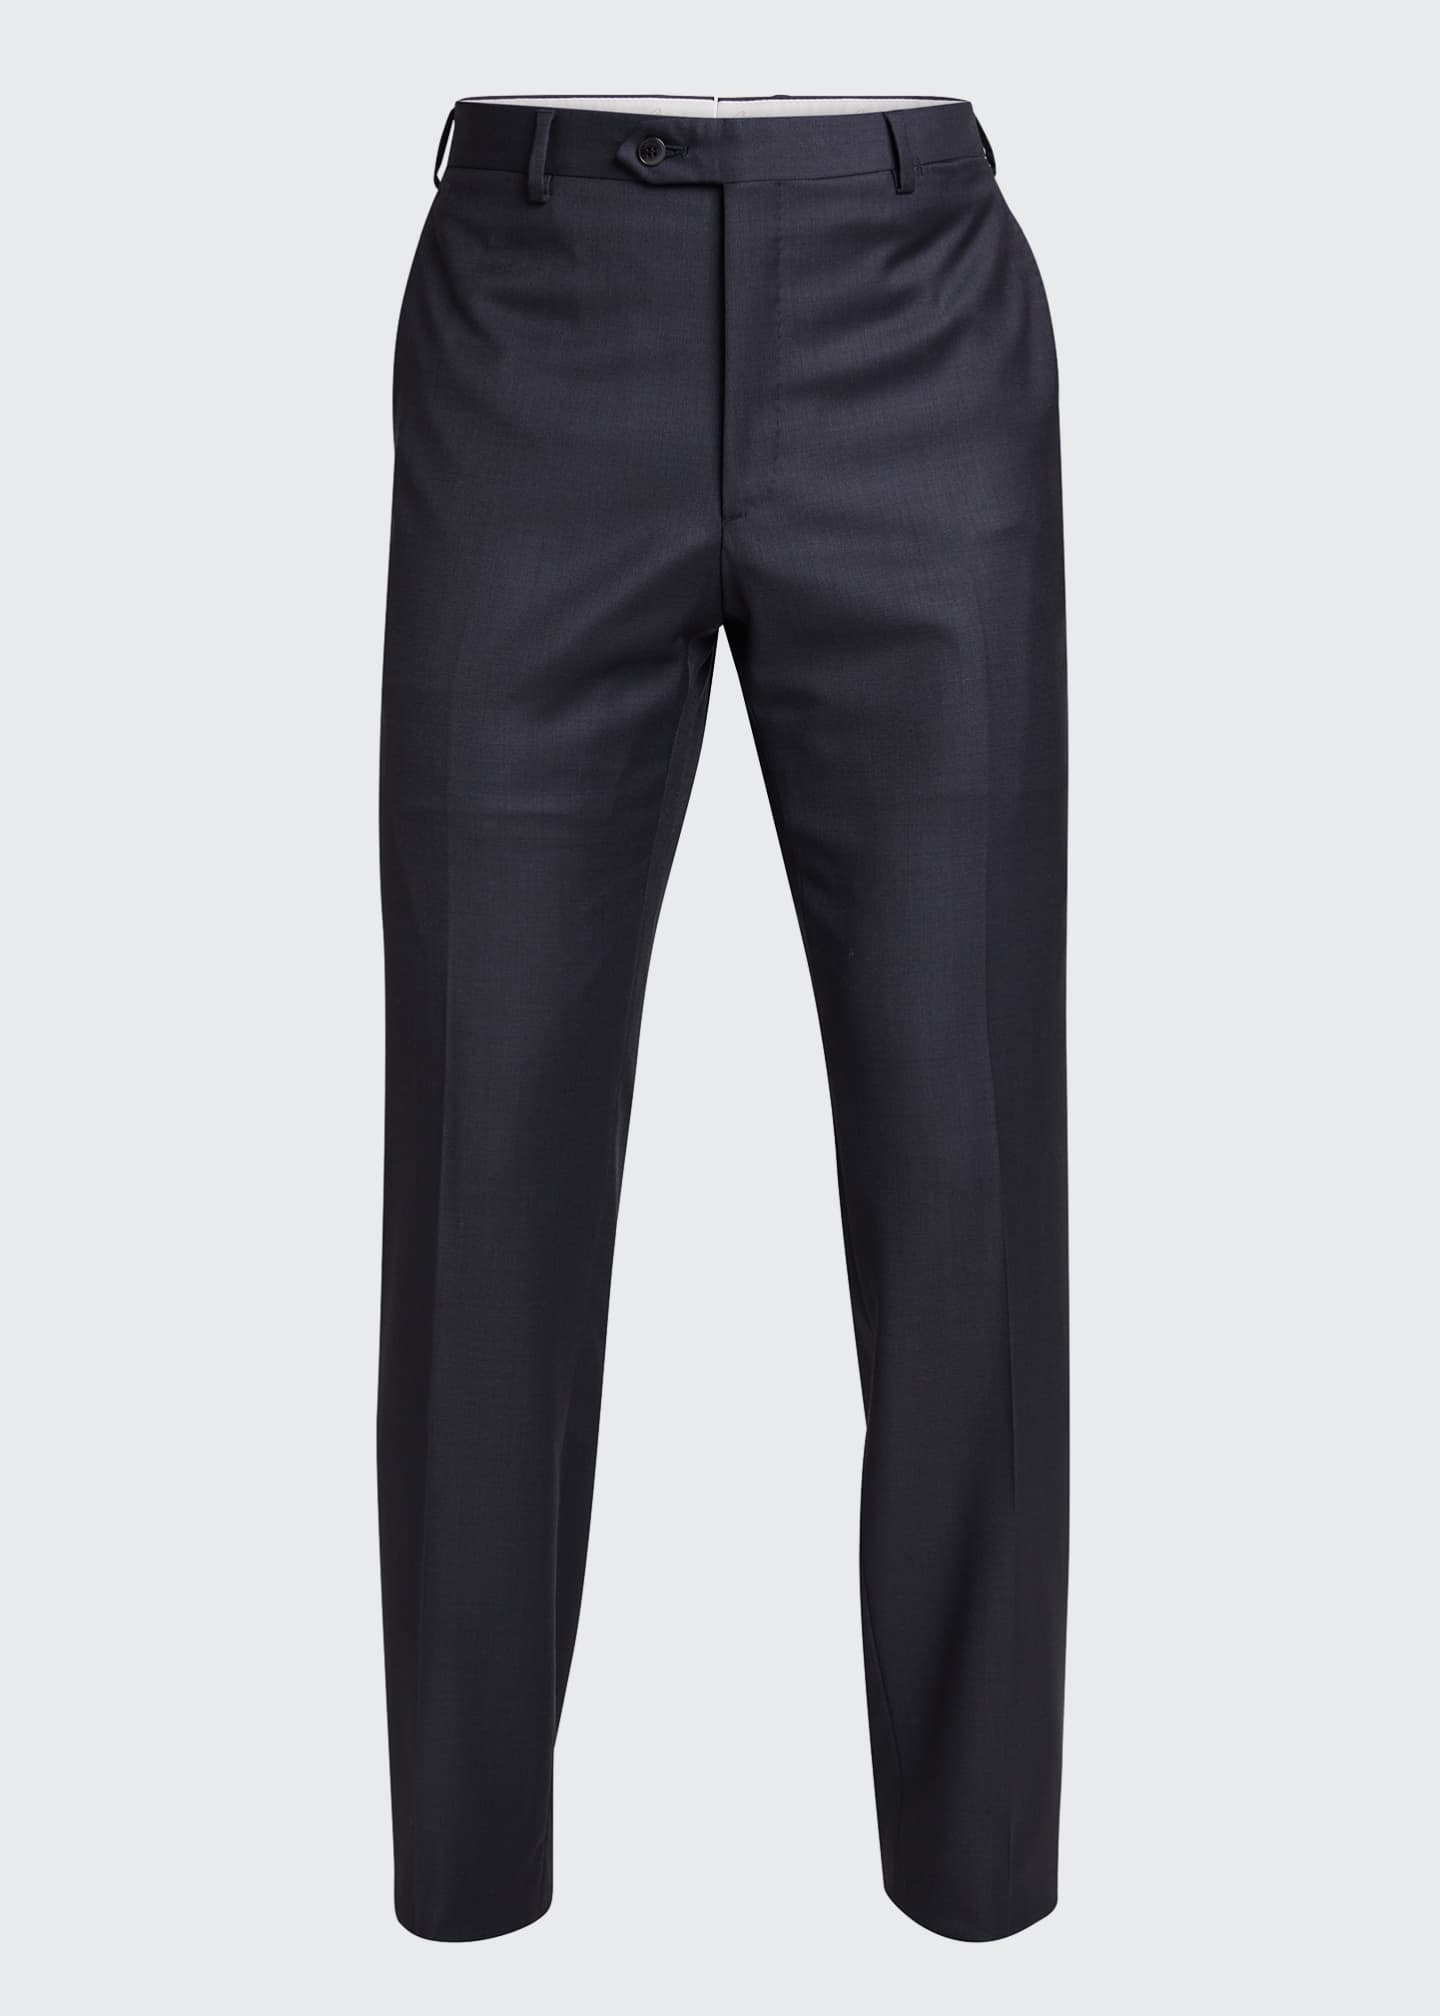 Image 5 of 5: Men's Tigulli Solid Wool Trousers